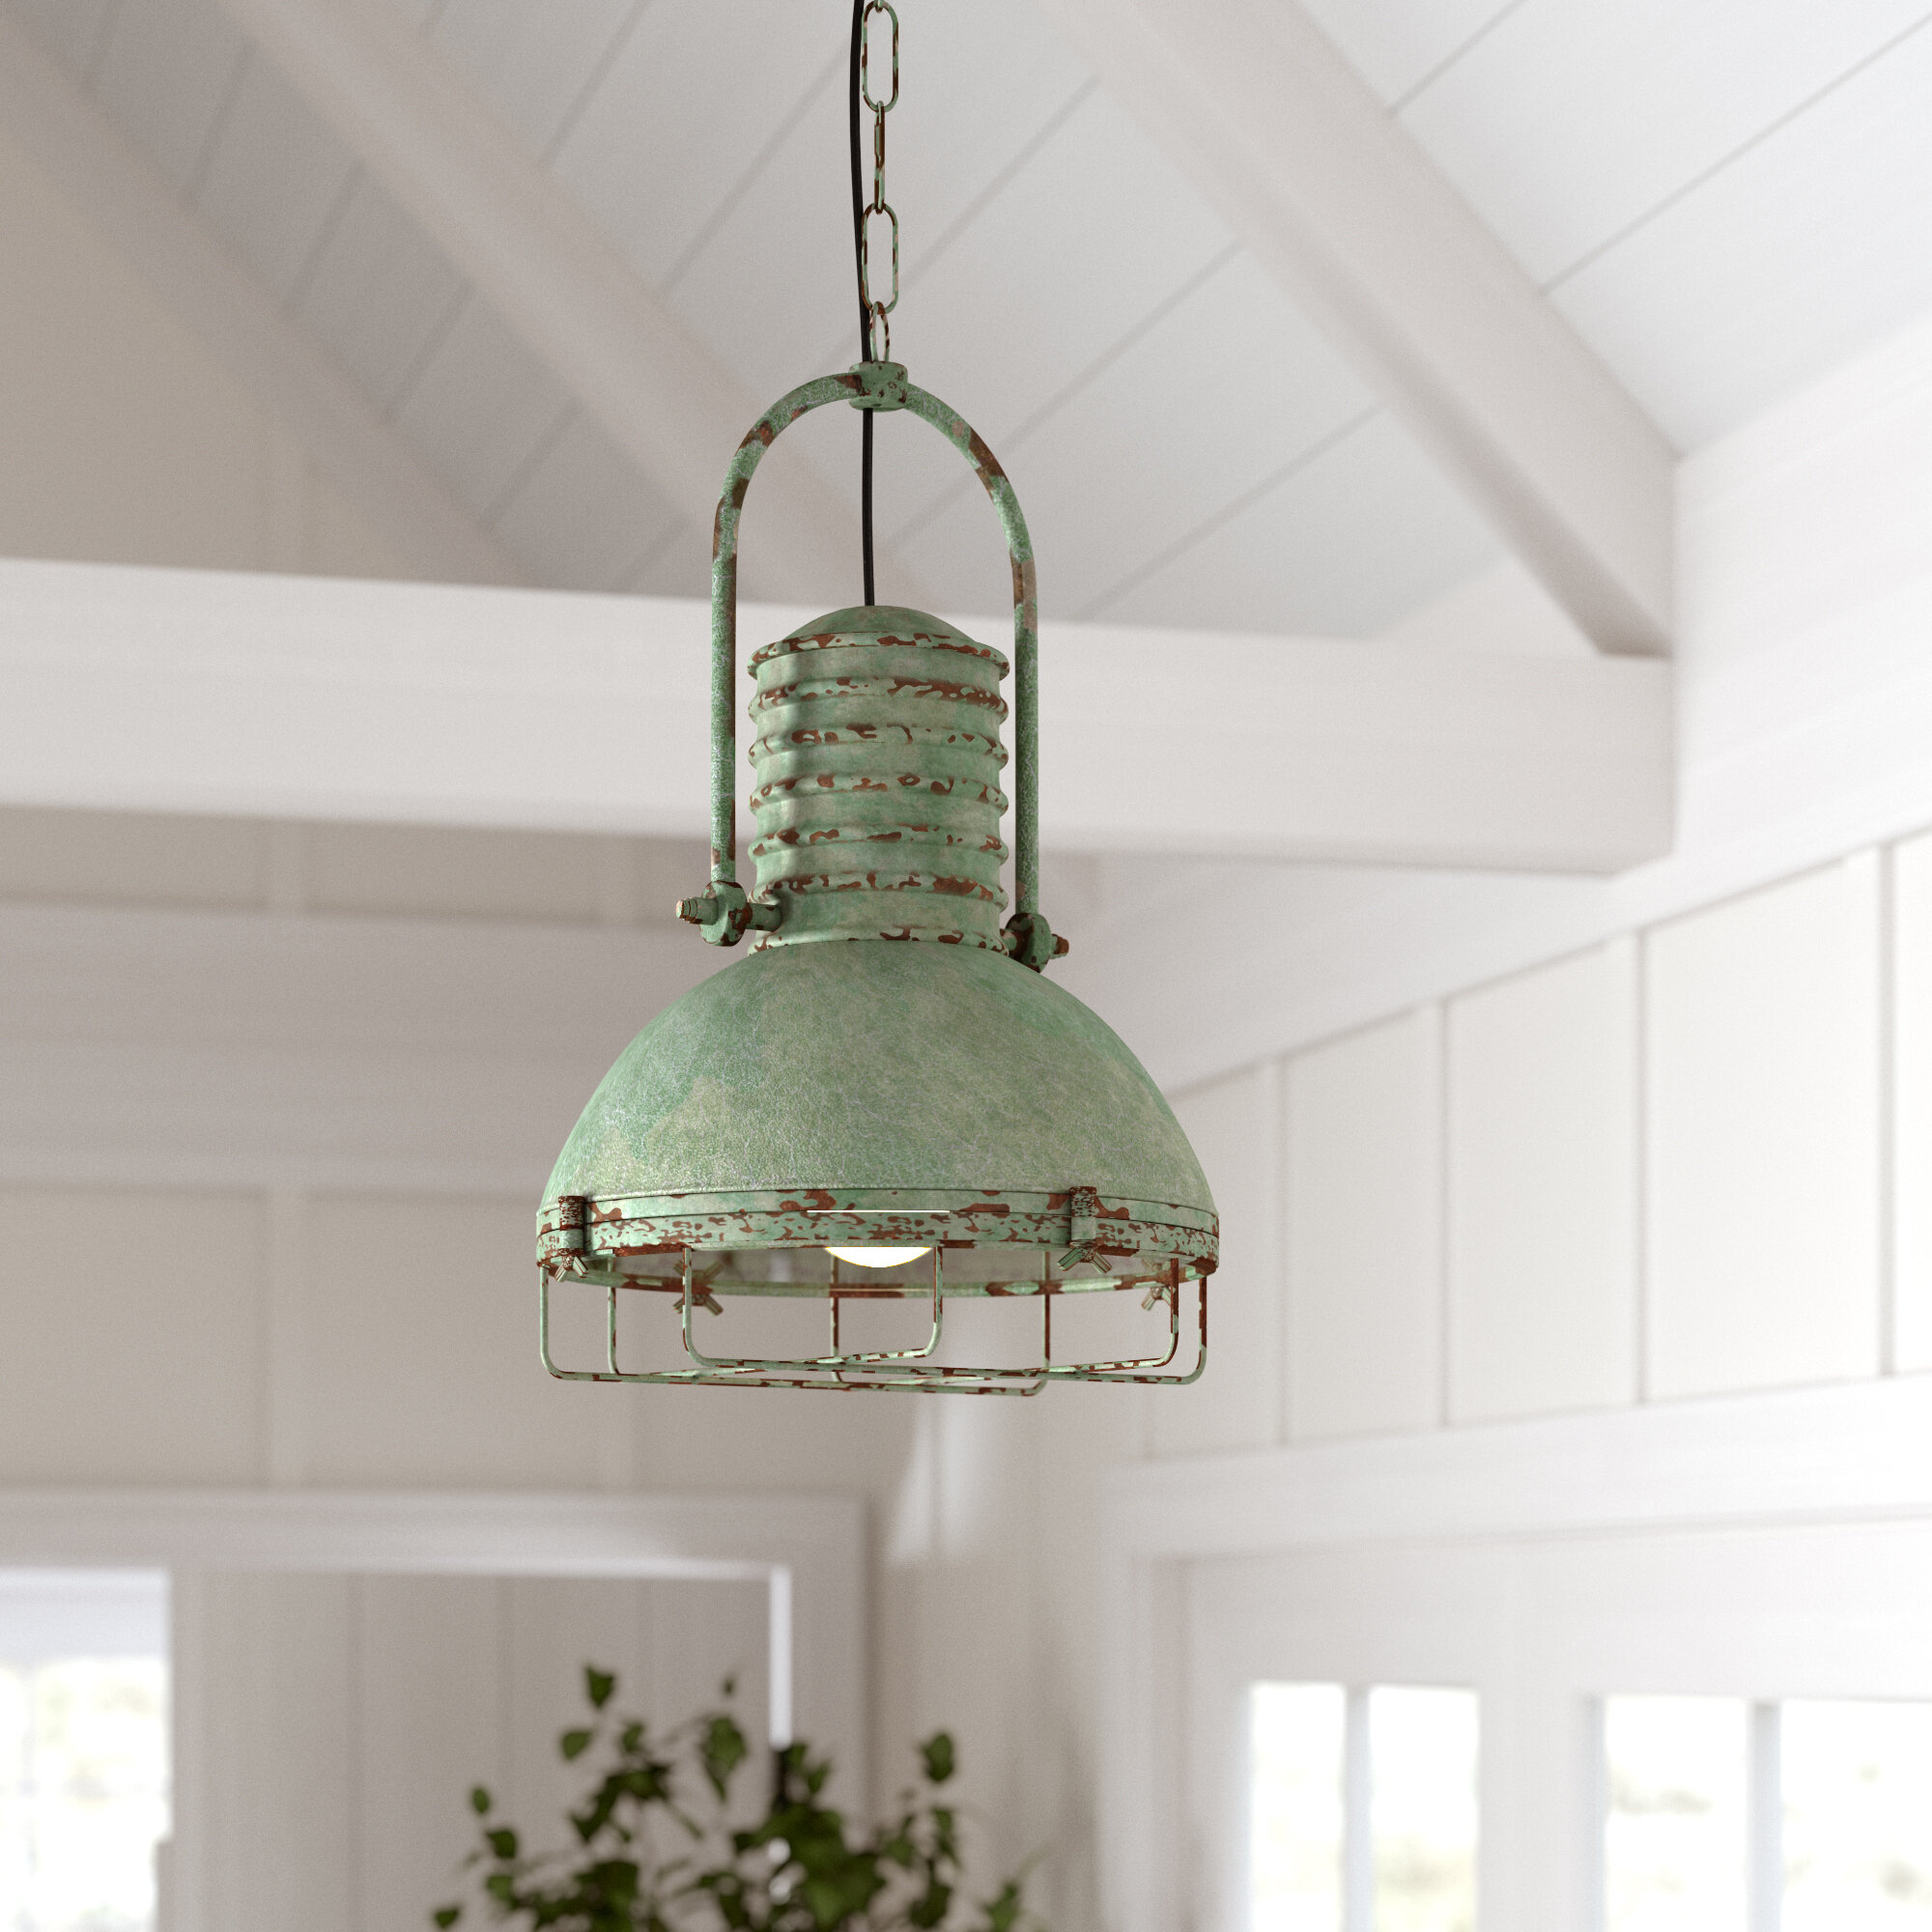 Hillary 1 Light Single Dome Pendant With Monadnock 1 Light Single Dome Pendants (View 15 of 30)